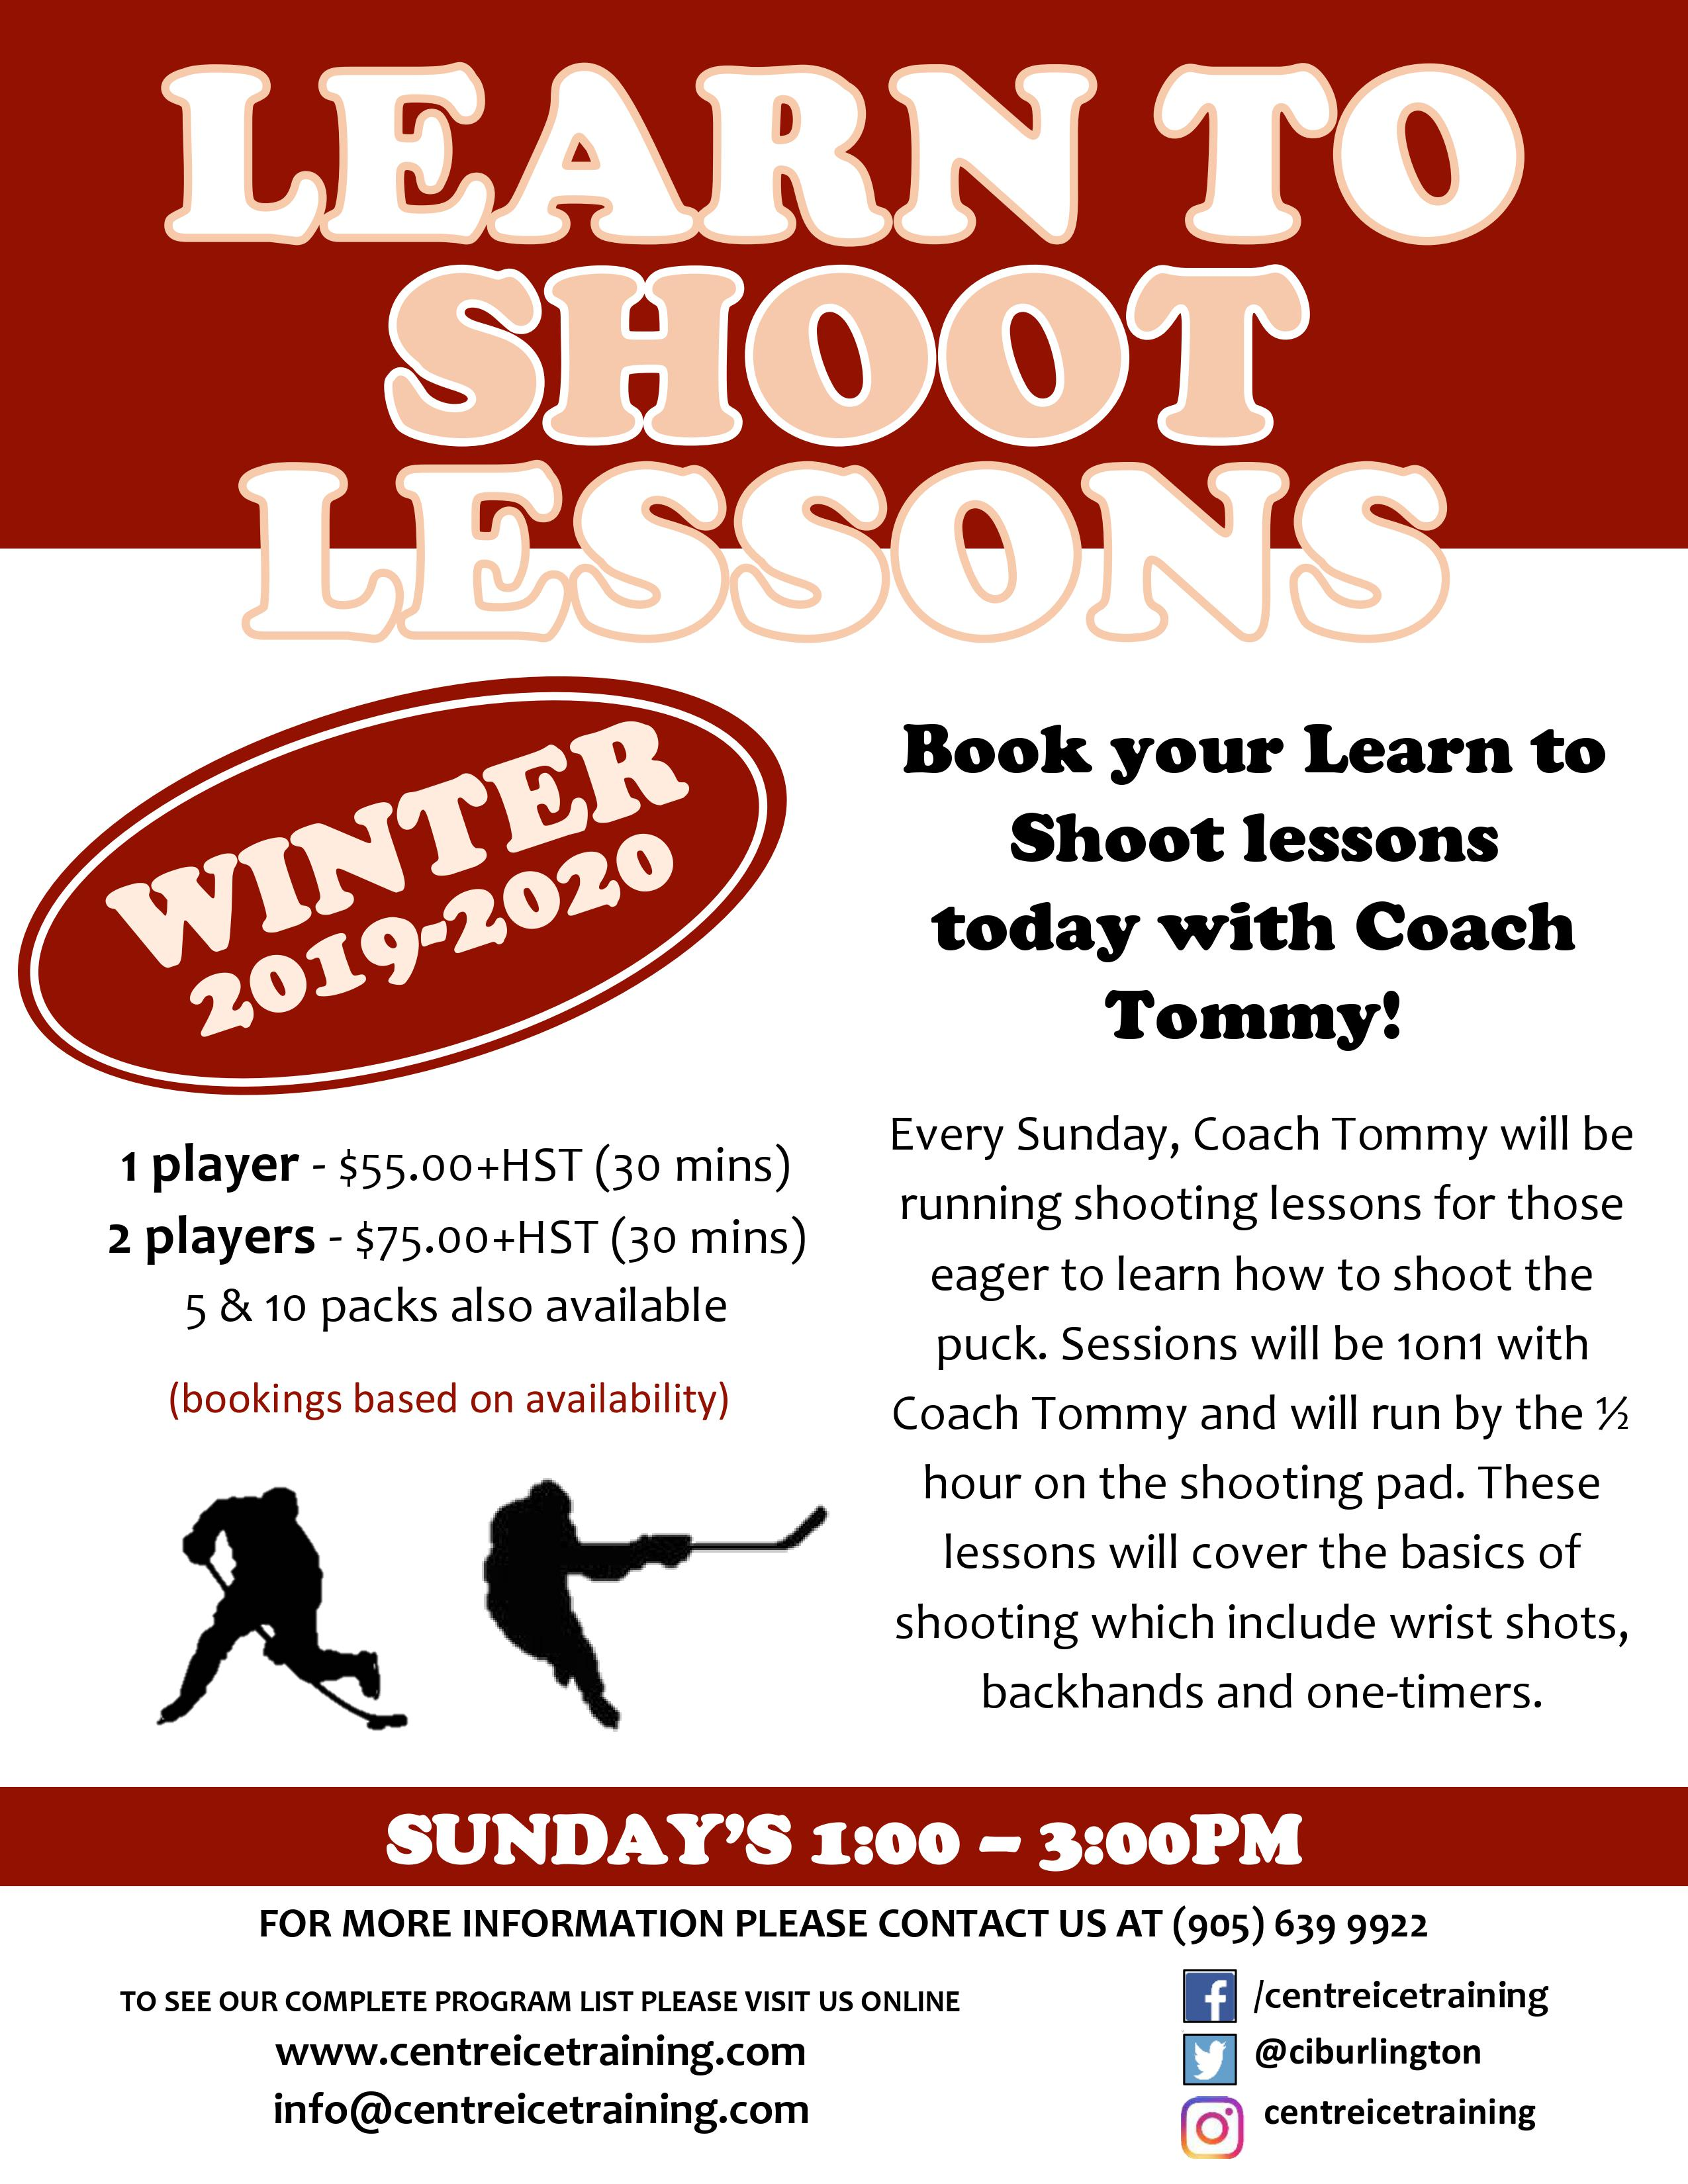 Learn to Shoot Lessons